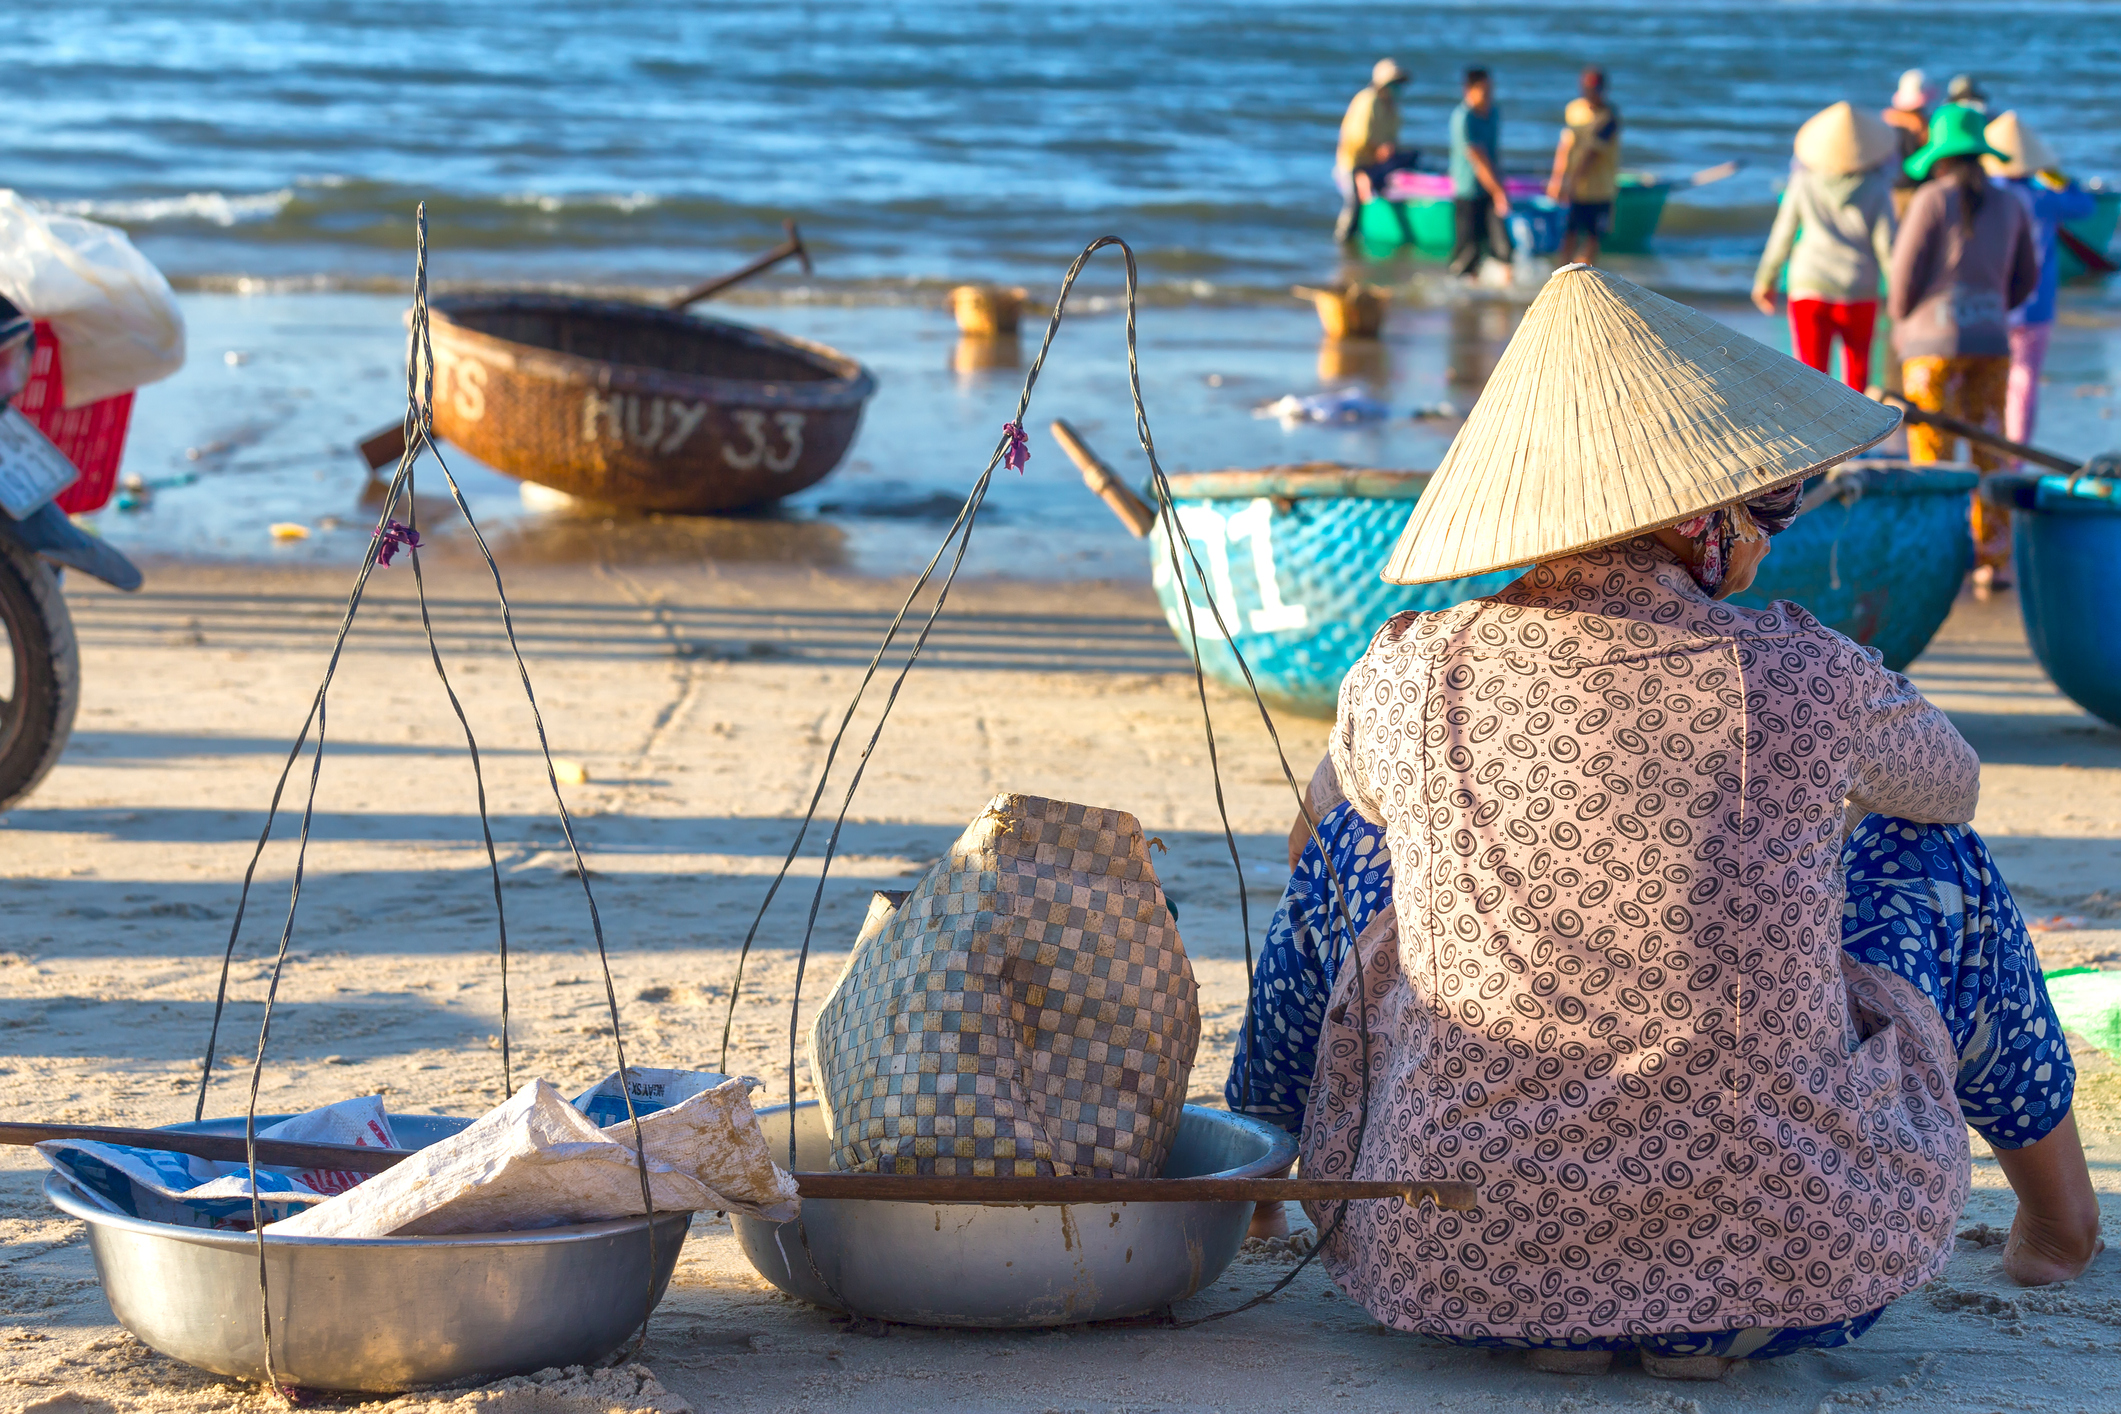 Binh Thuan, Vietnam - January 21st, 2016: Woman with shoulder alignment is waiting for fishermen to bring the beach to buy fish for sale in the morning market in the fishing village of Binh Thuan, Vietnam